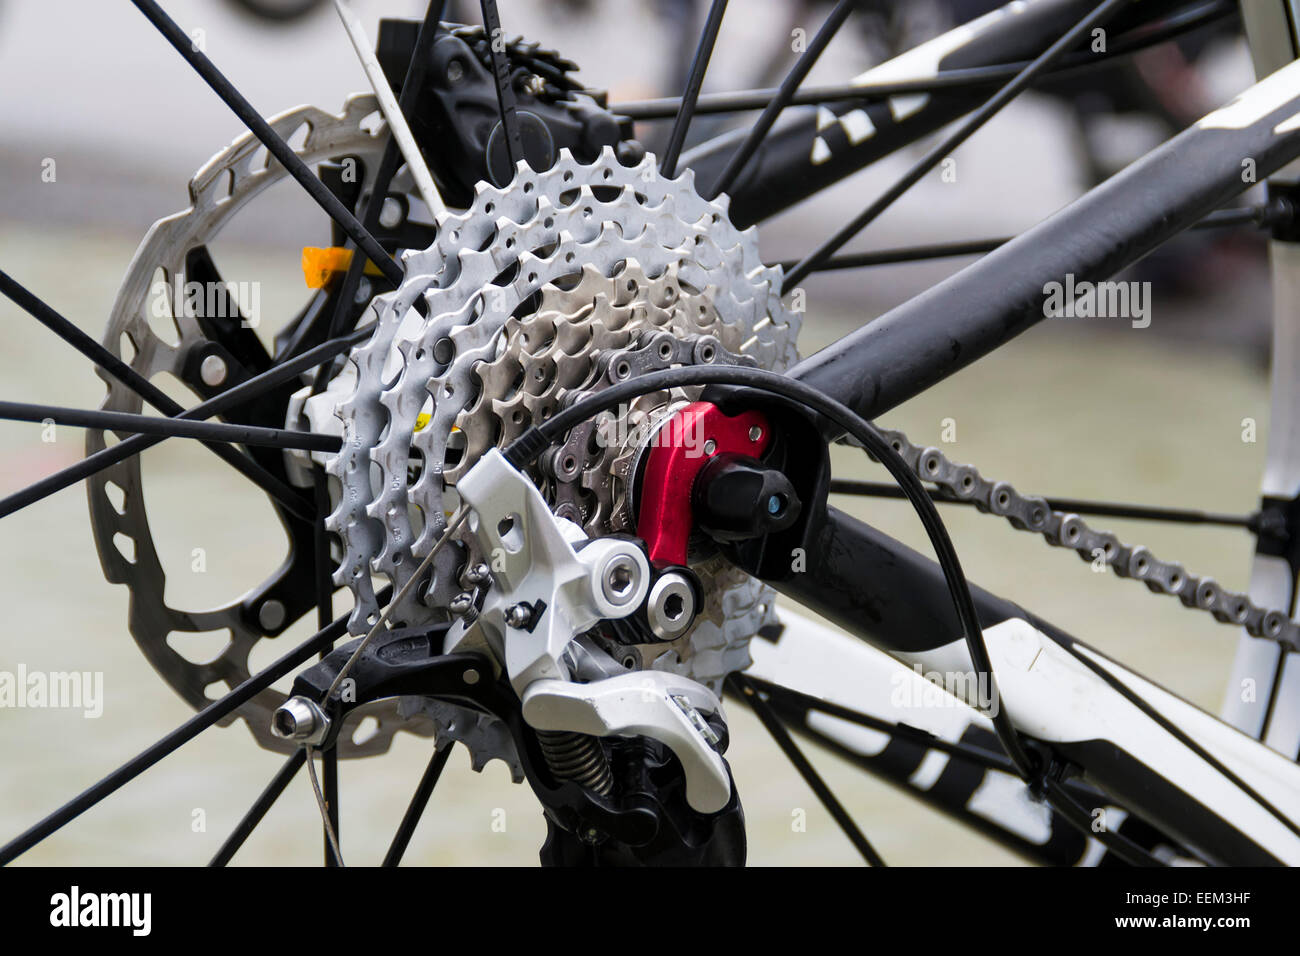 The rear side of a mountain bike with detail on sprockets , brakes and rear shifter system - Stock Image